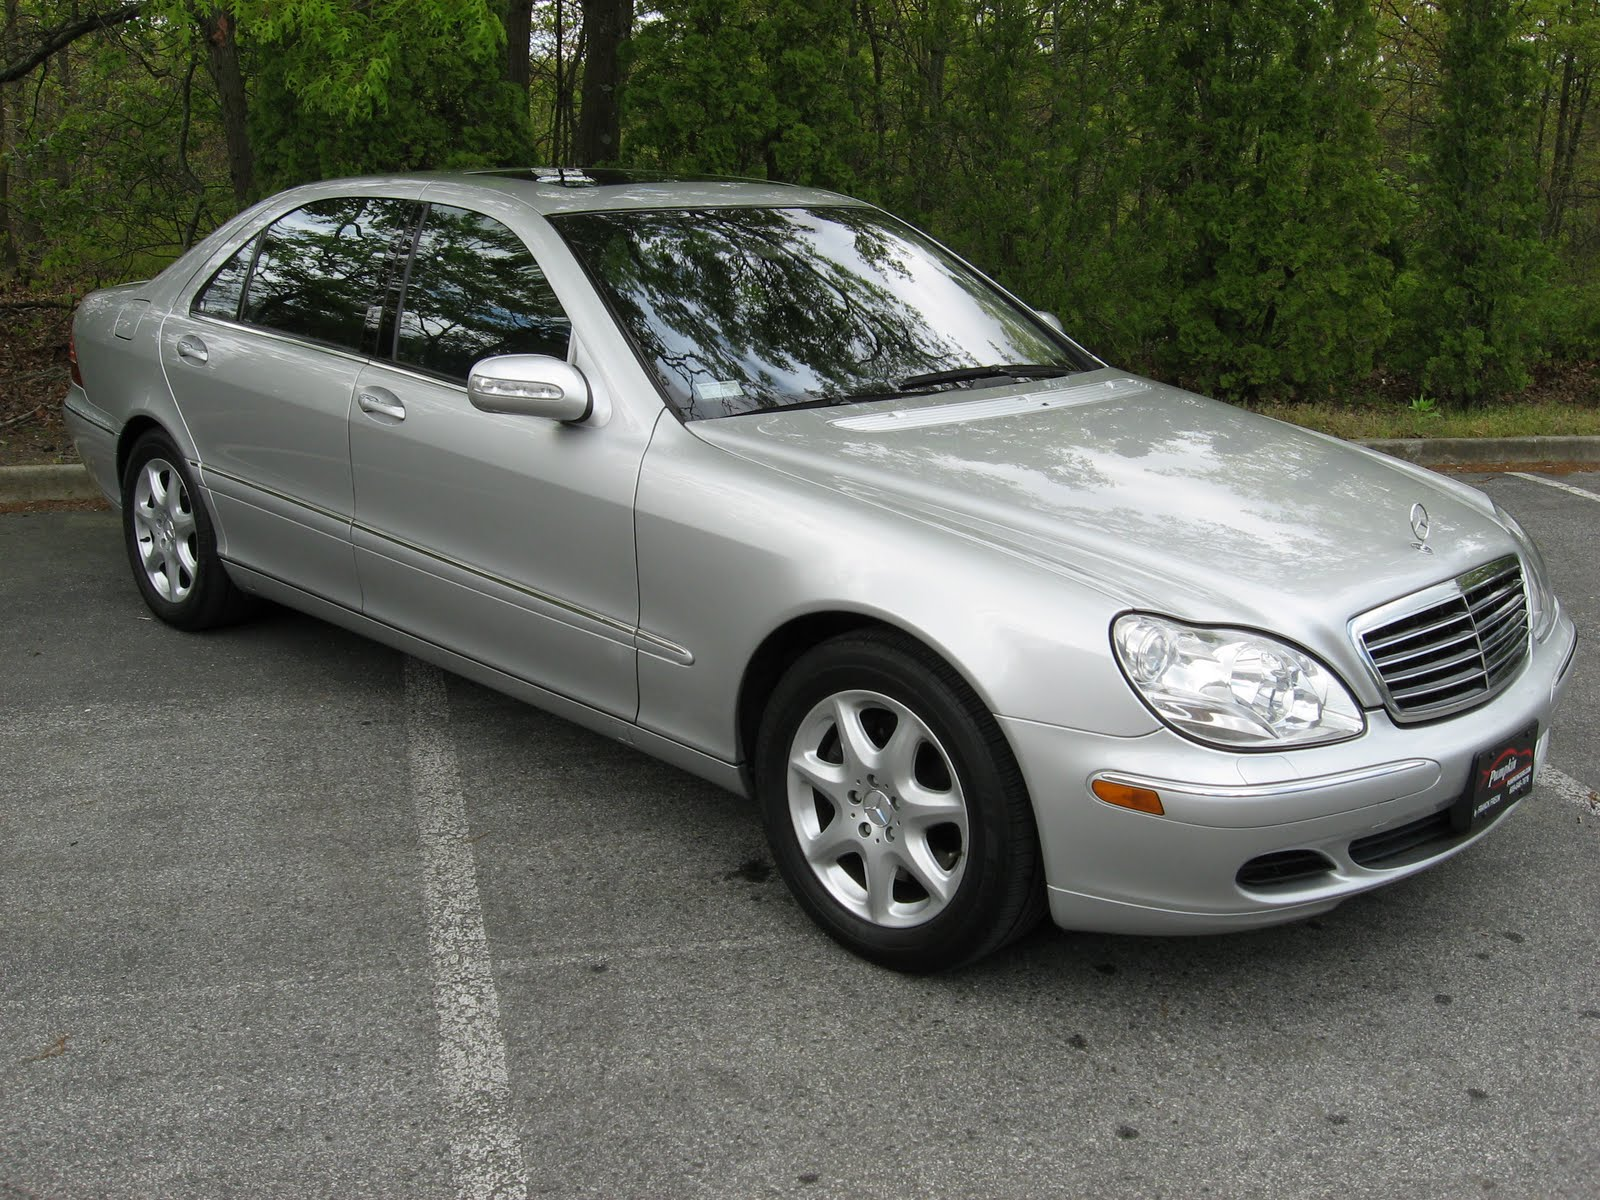 Pumpkin fine cars and exotics 2003 mercedes benz s430 4matic for S430 mercedes benz